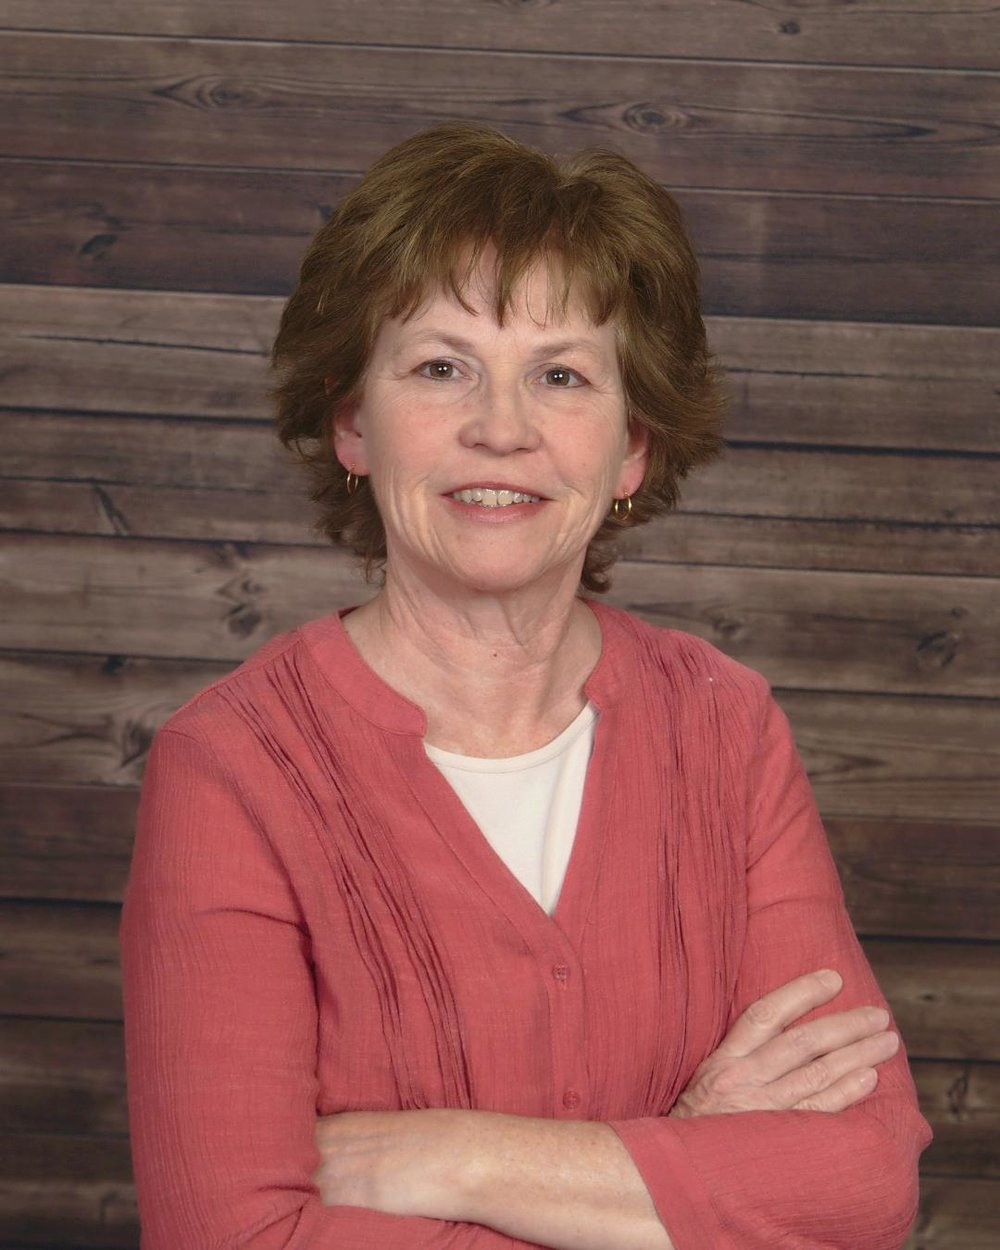 Jane Ginter, MSW, LISW, LMSW Licensed Master Social Worker